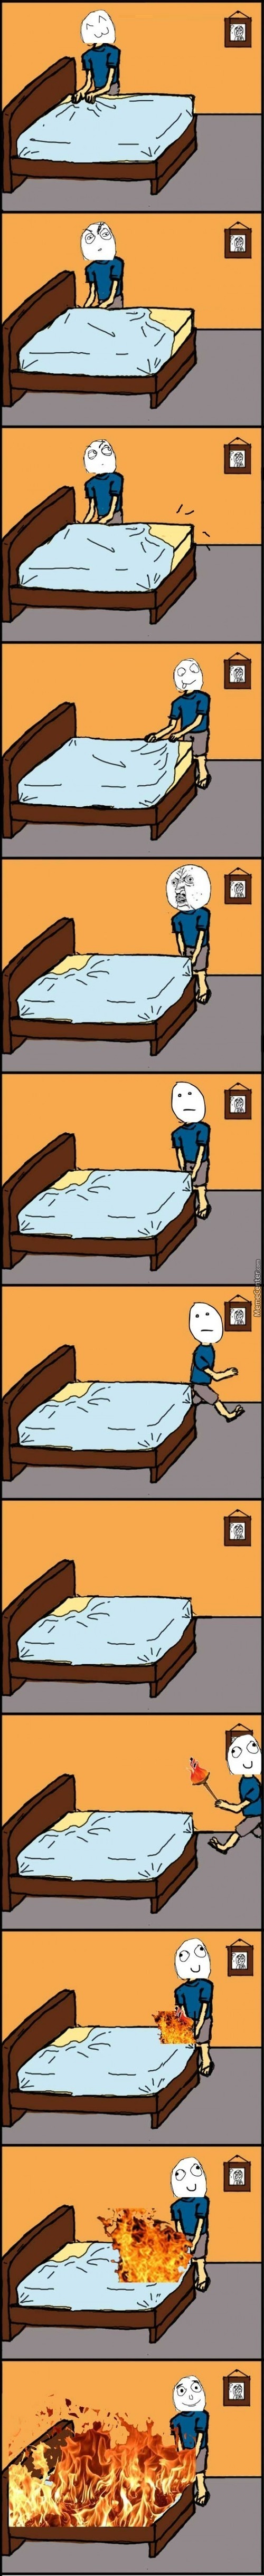 Bed Rage